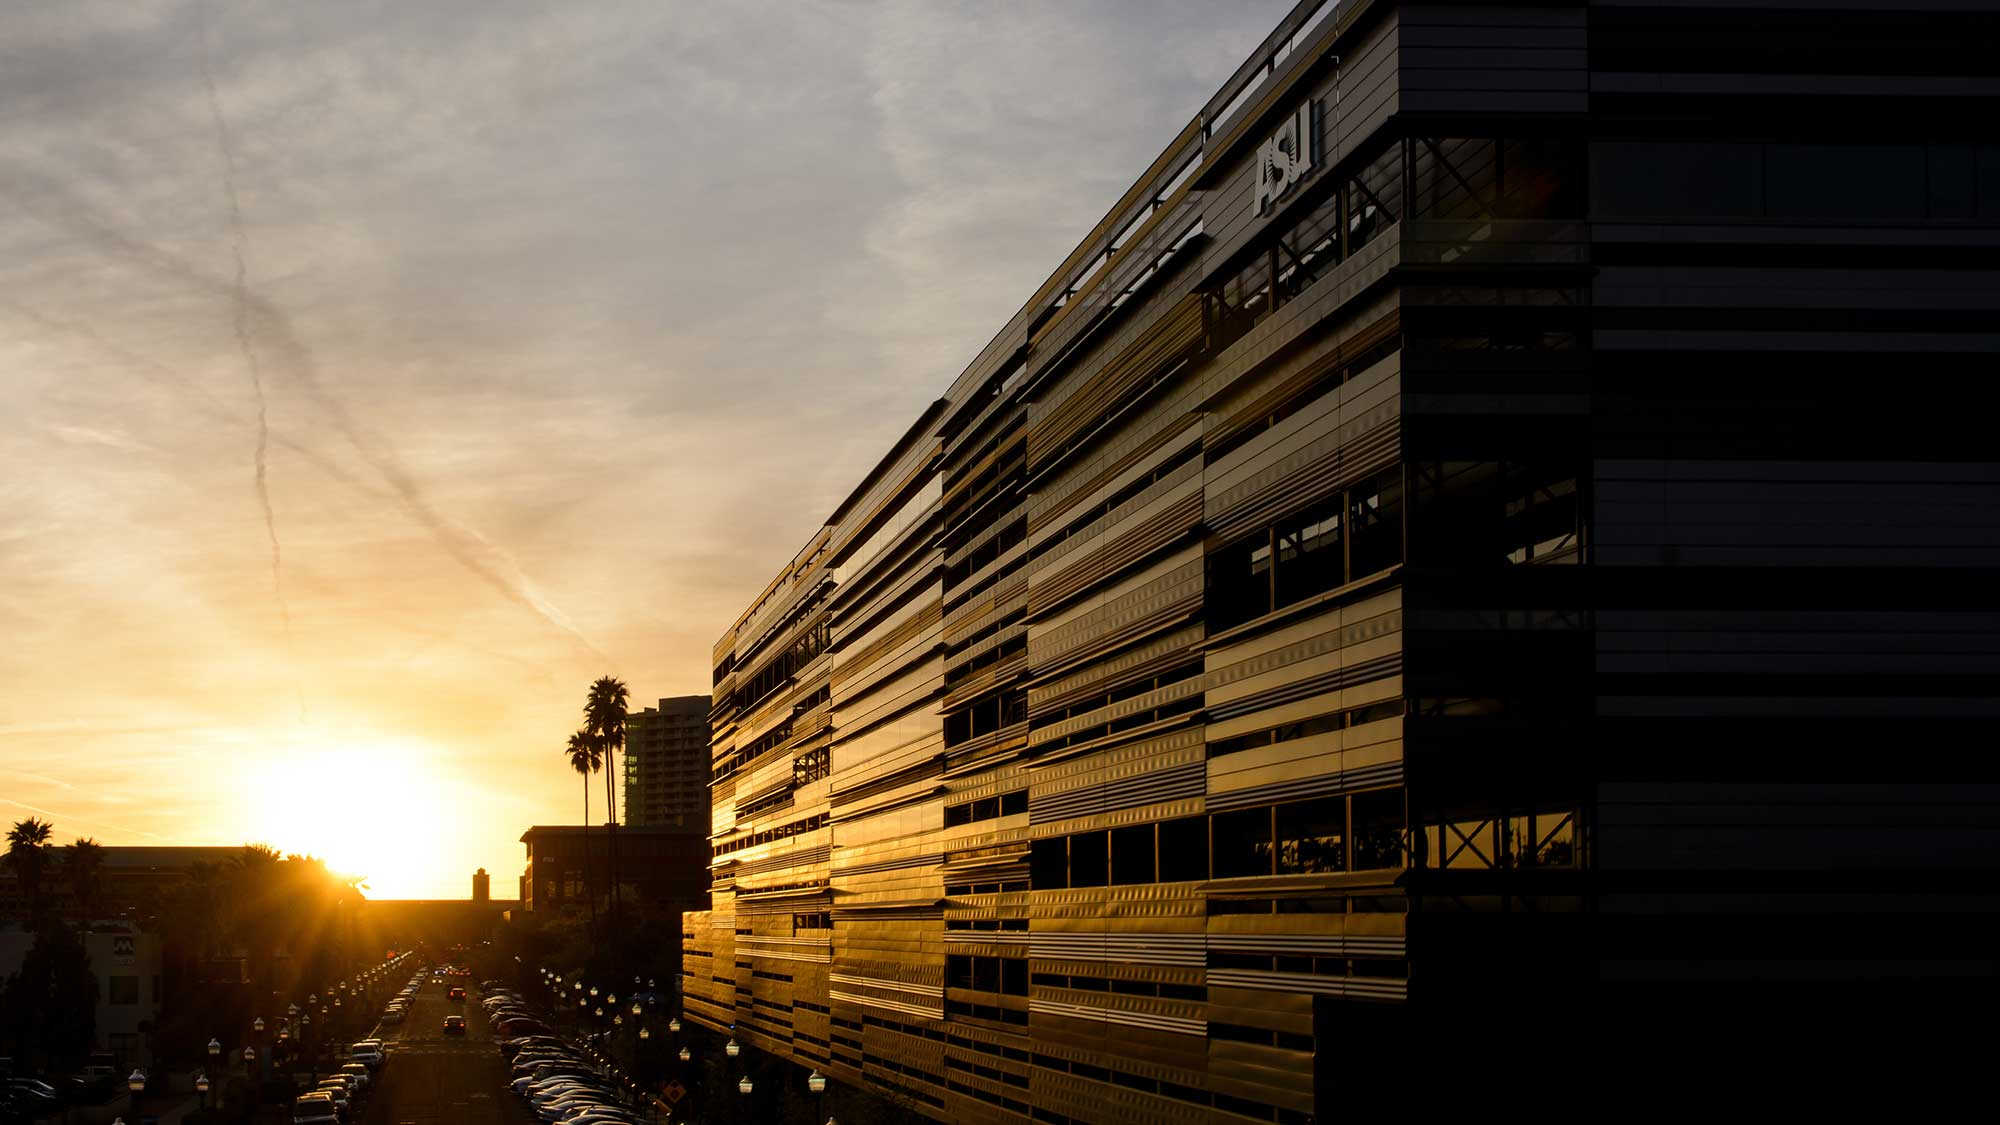 ASU's College Avenue Commons building against a beautiful golden sunset